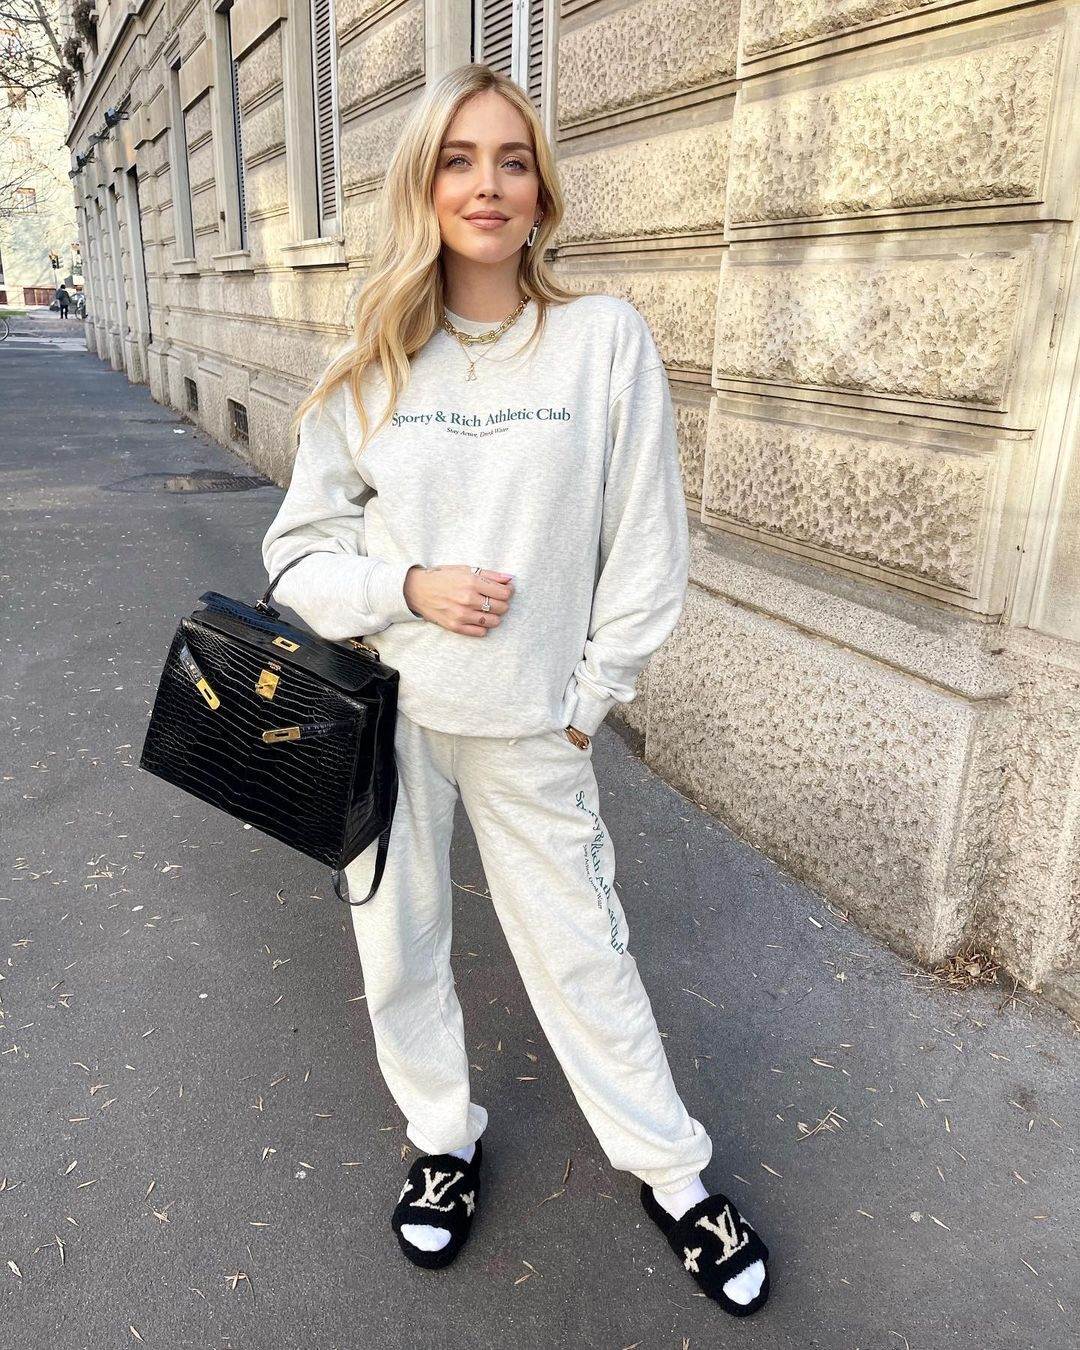 Il look leisure dell'influencer